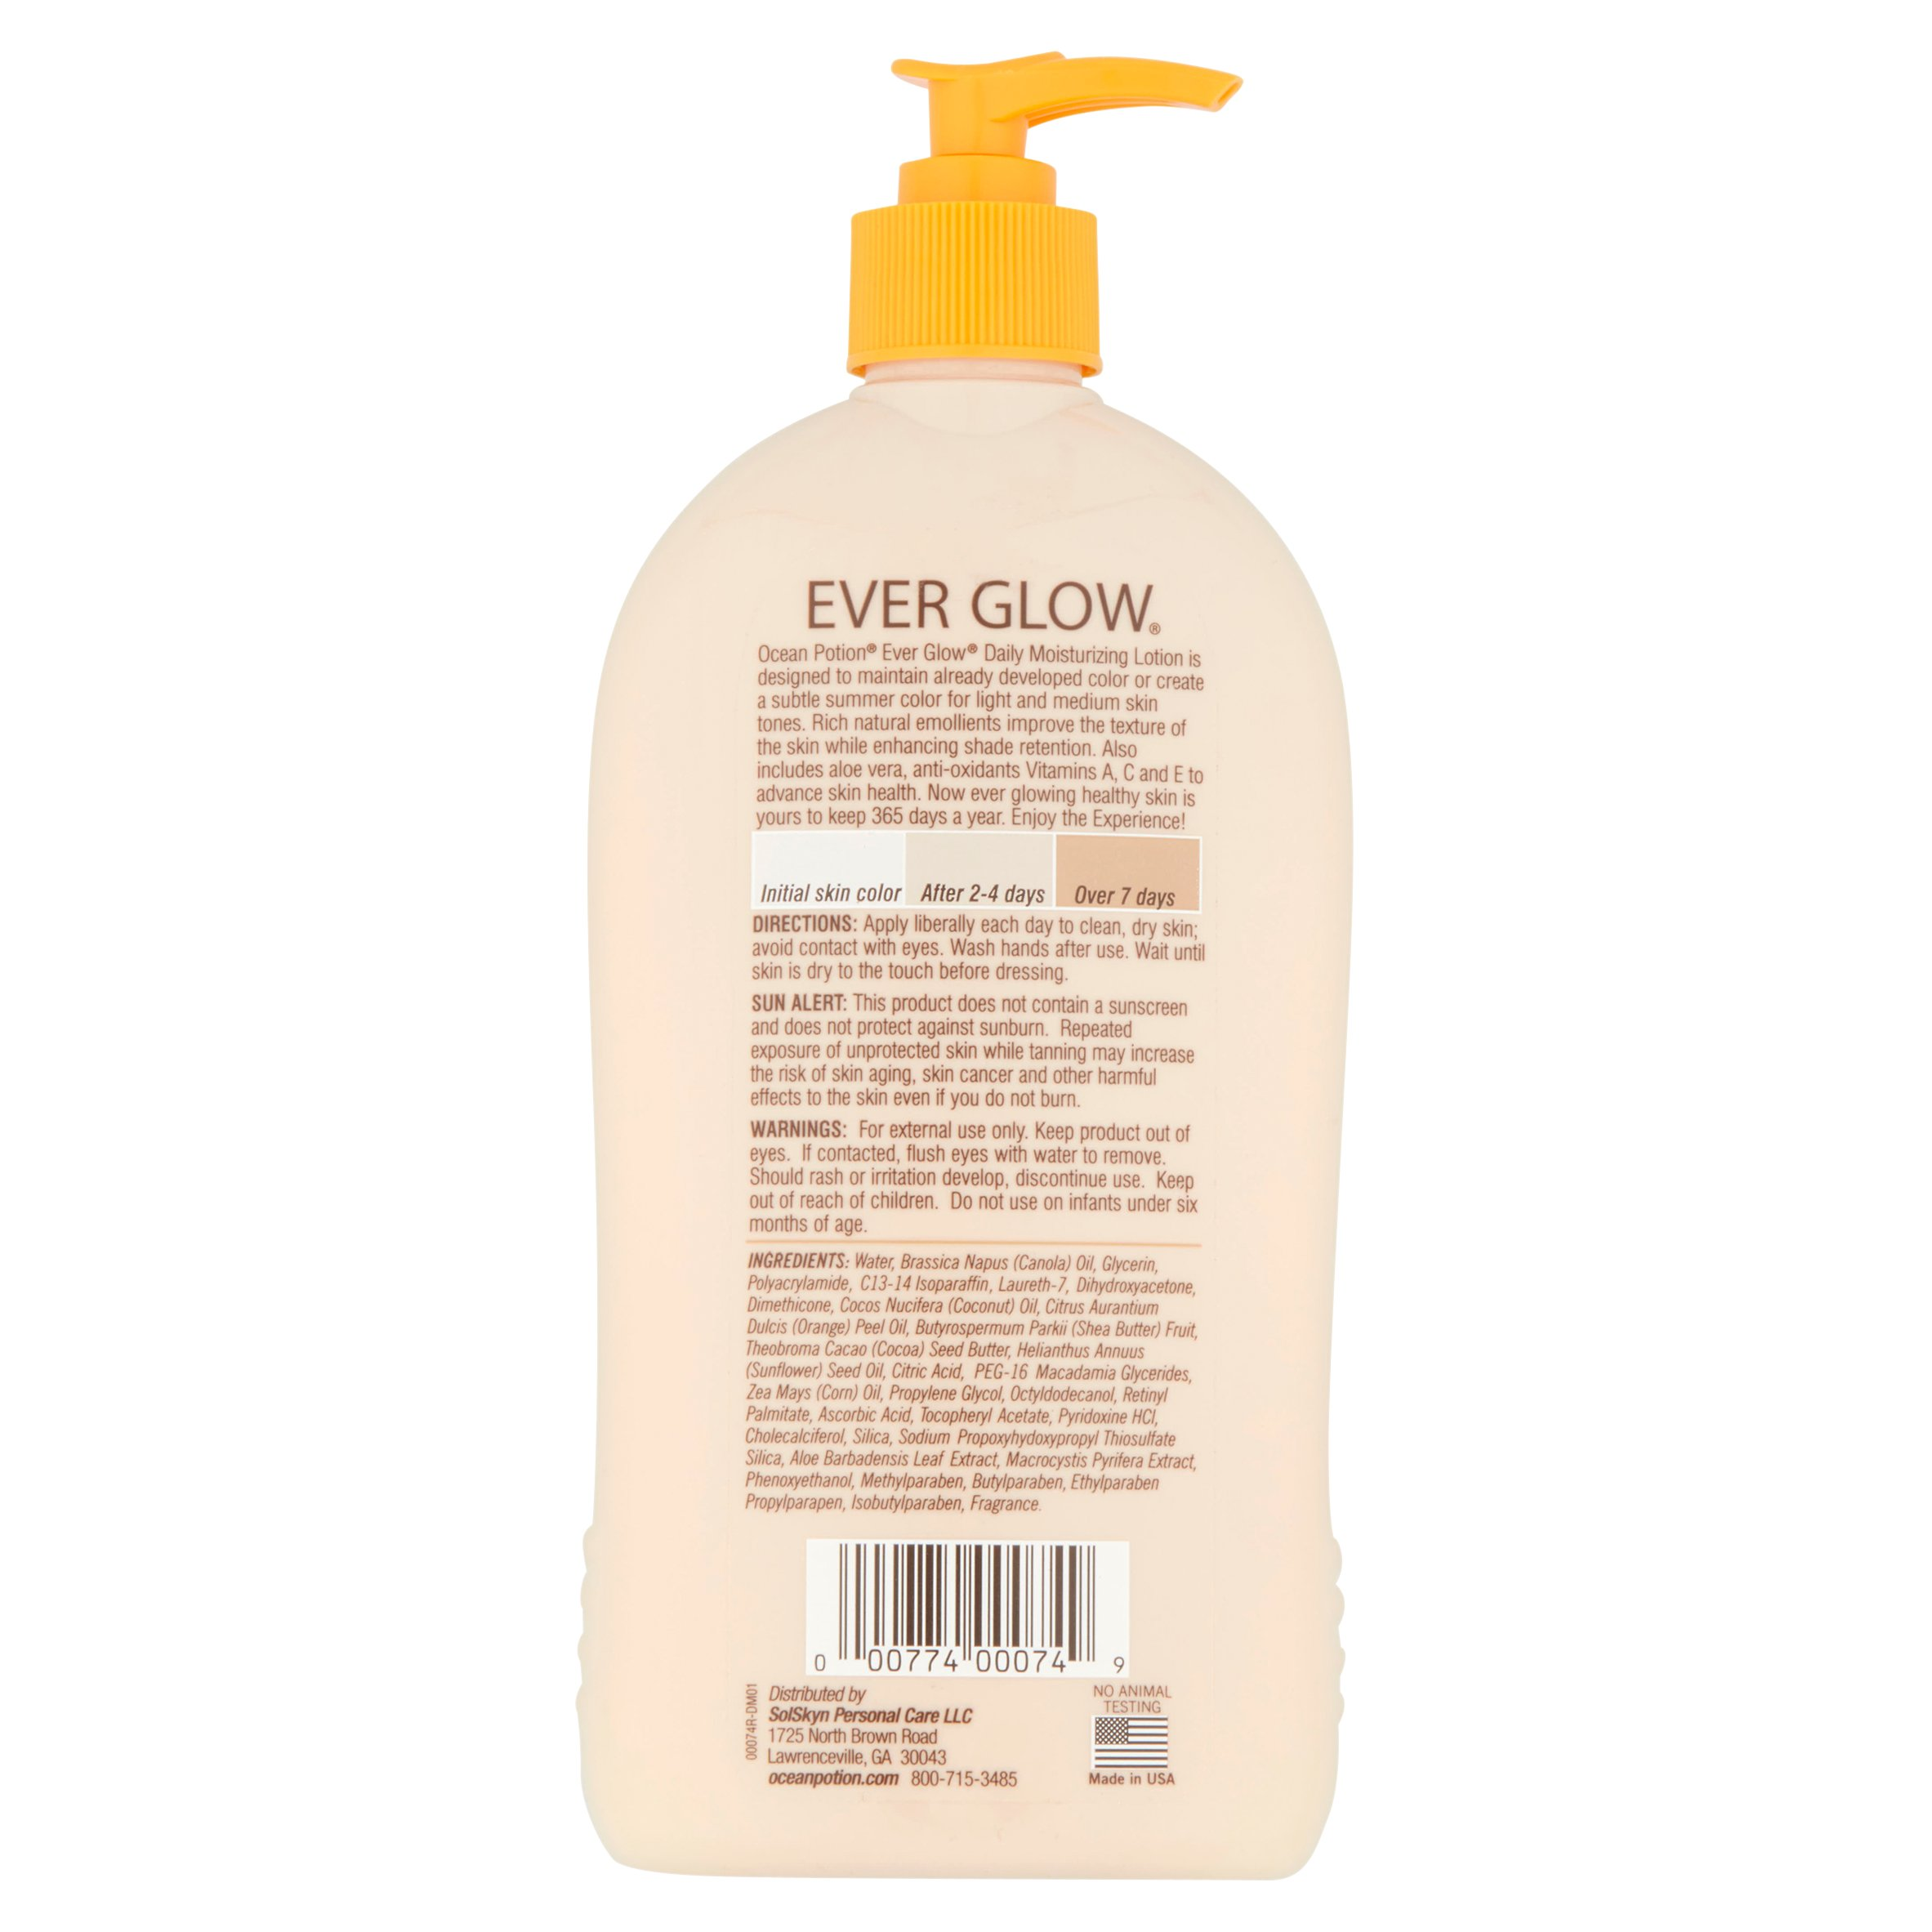 Ocean Potion Skincare Ever Glow Daily Moisturizer Lotion 20.5 Fl Oz At Any Cost After Sun Skin Care Sun Protection & Tanning